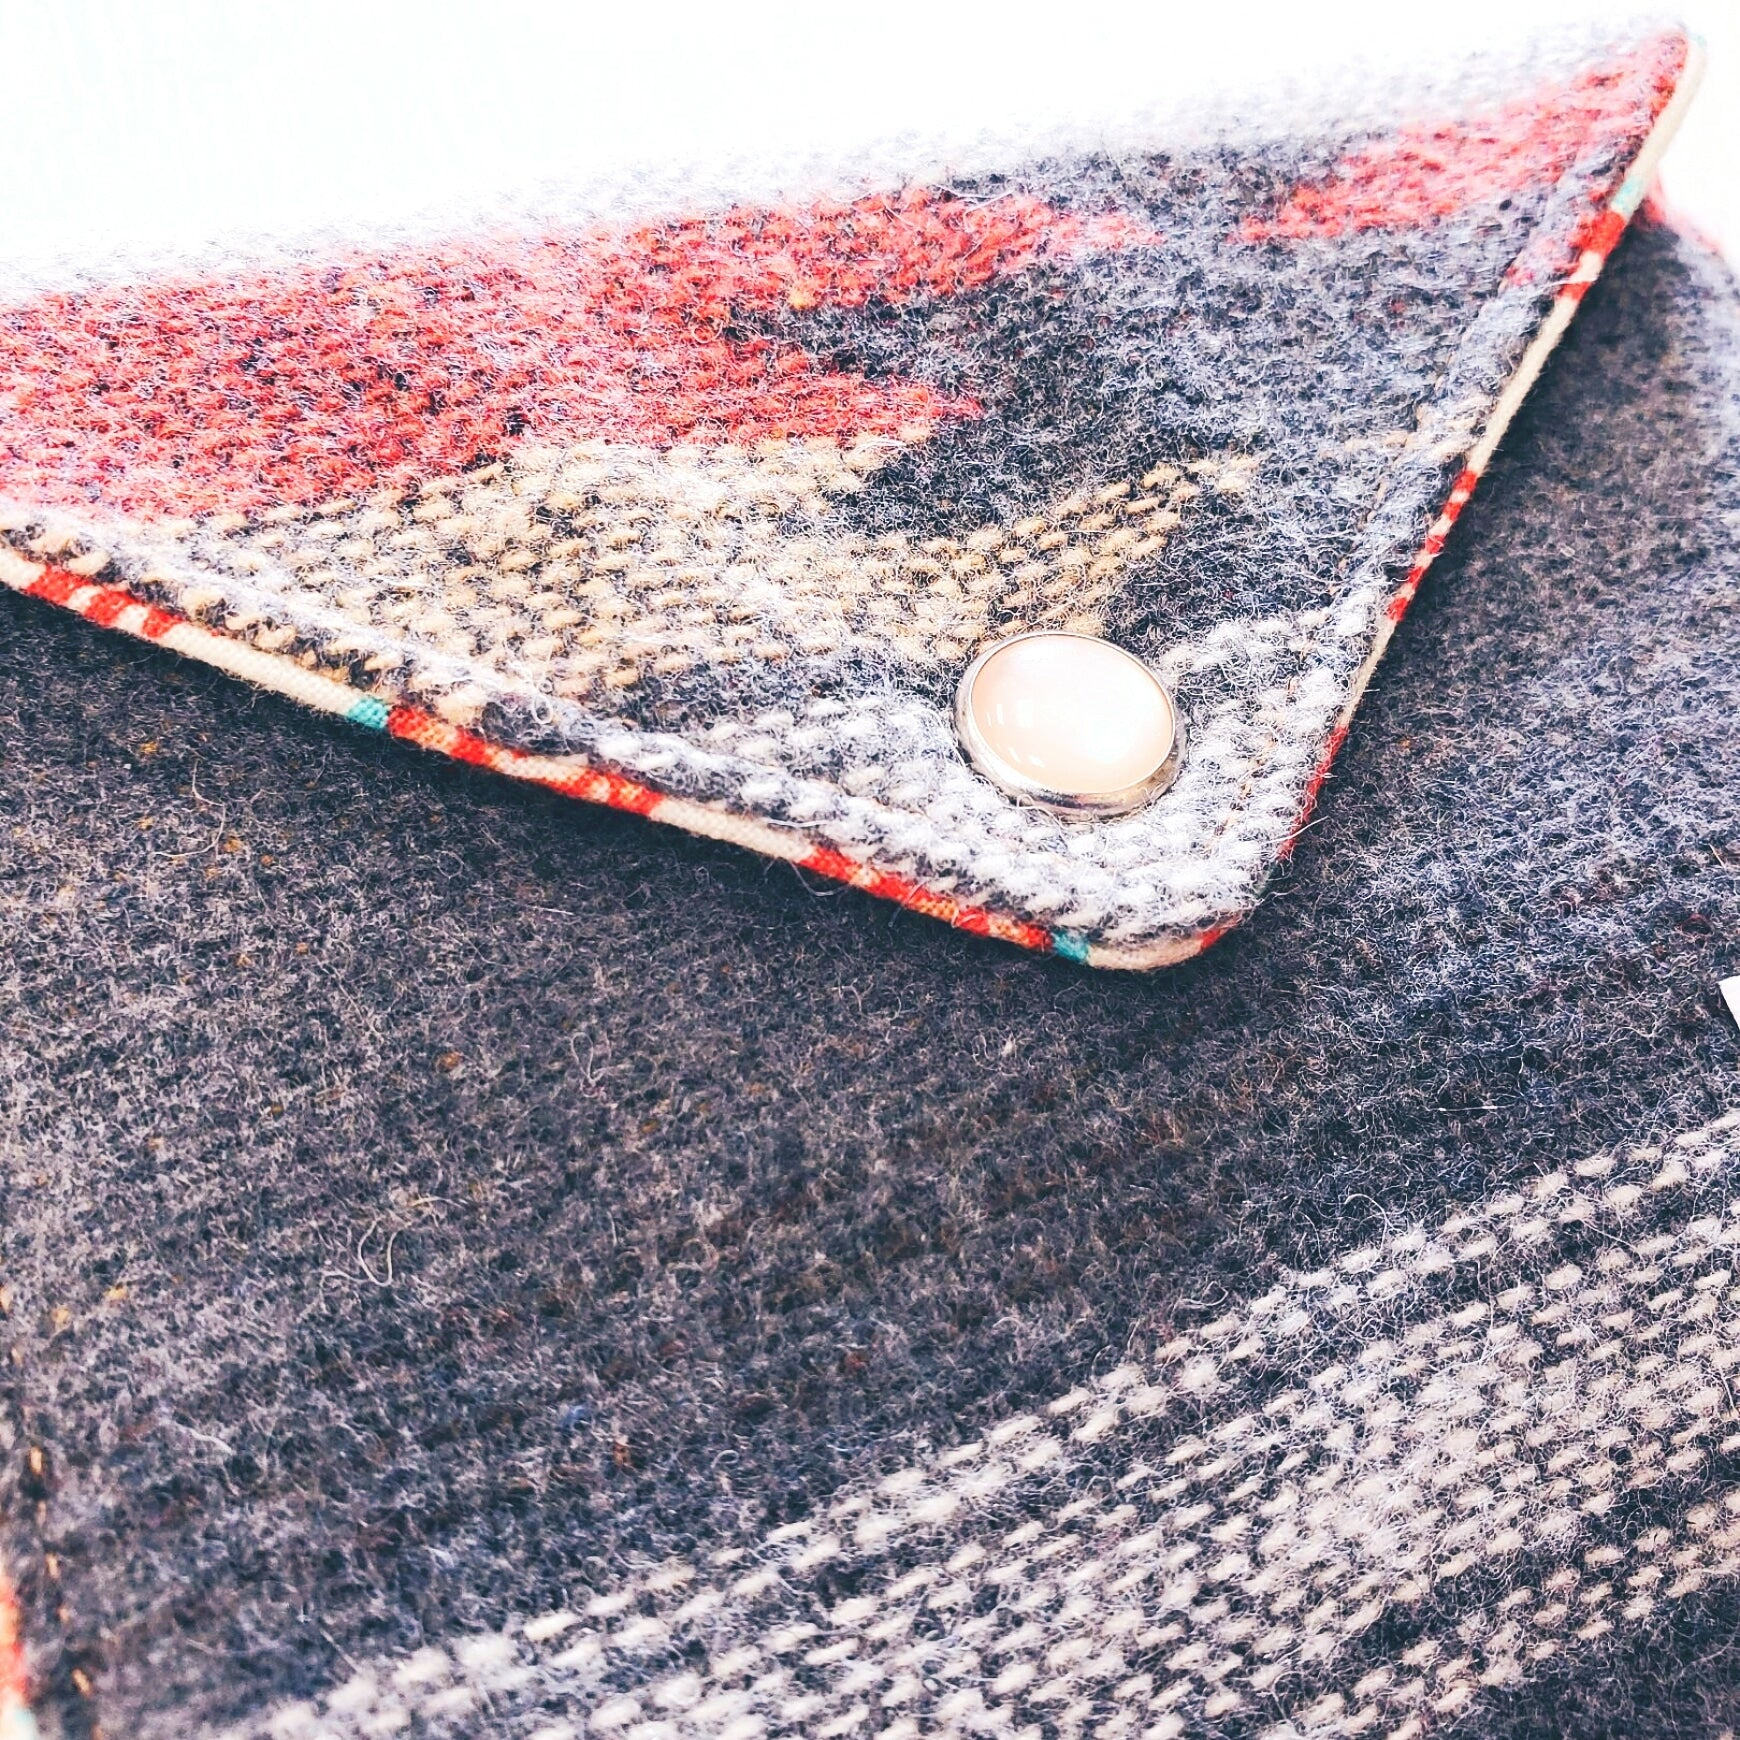 The Original Chap Stick Wallet! The Avail: Blanket - Sally Forth Supply Co.